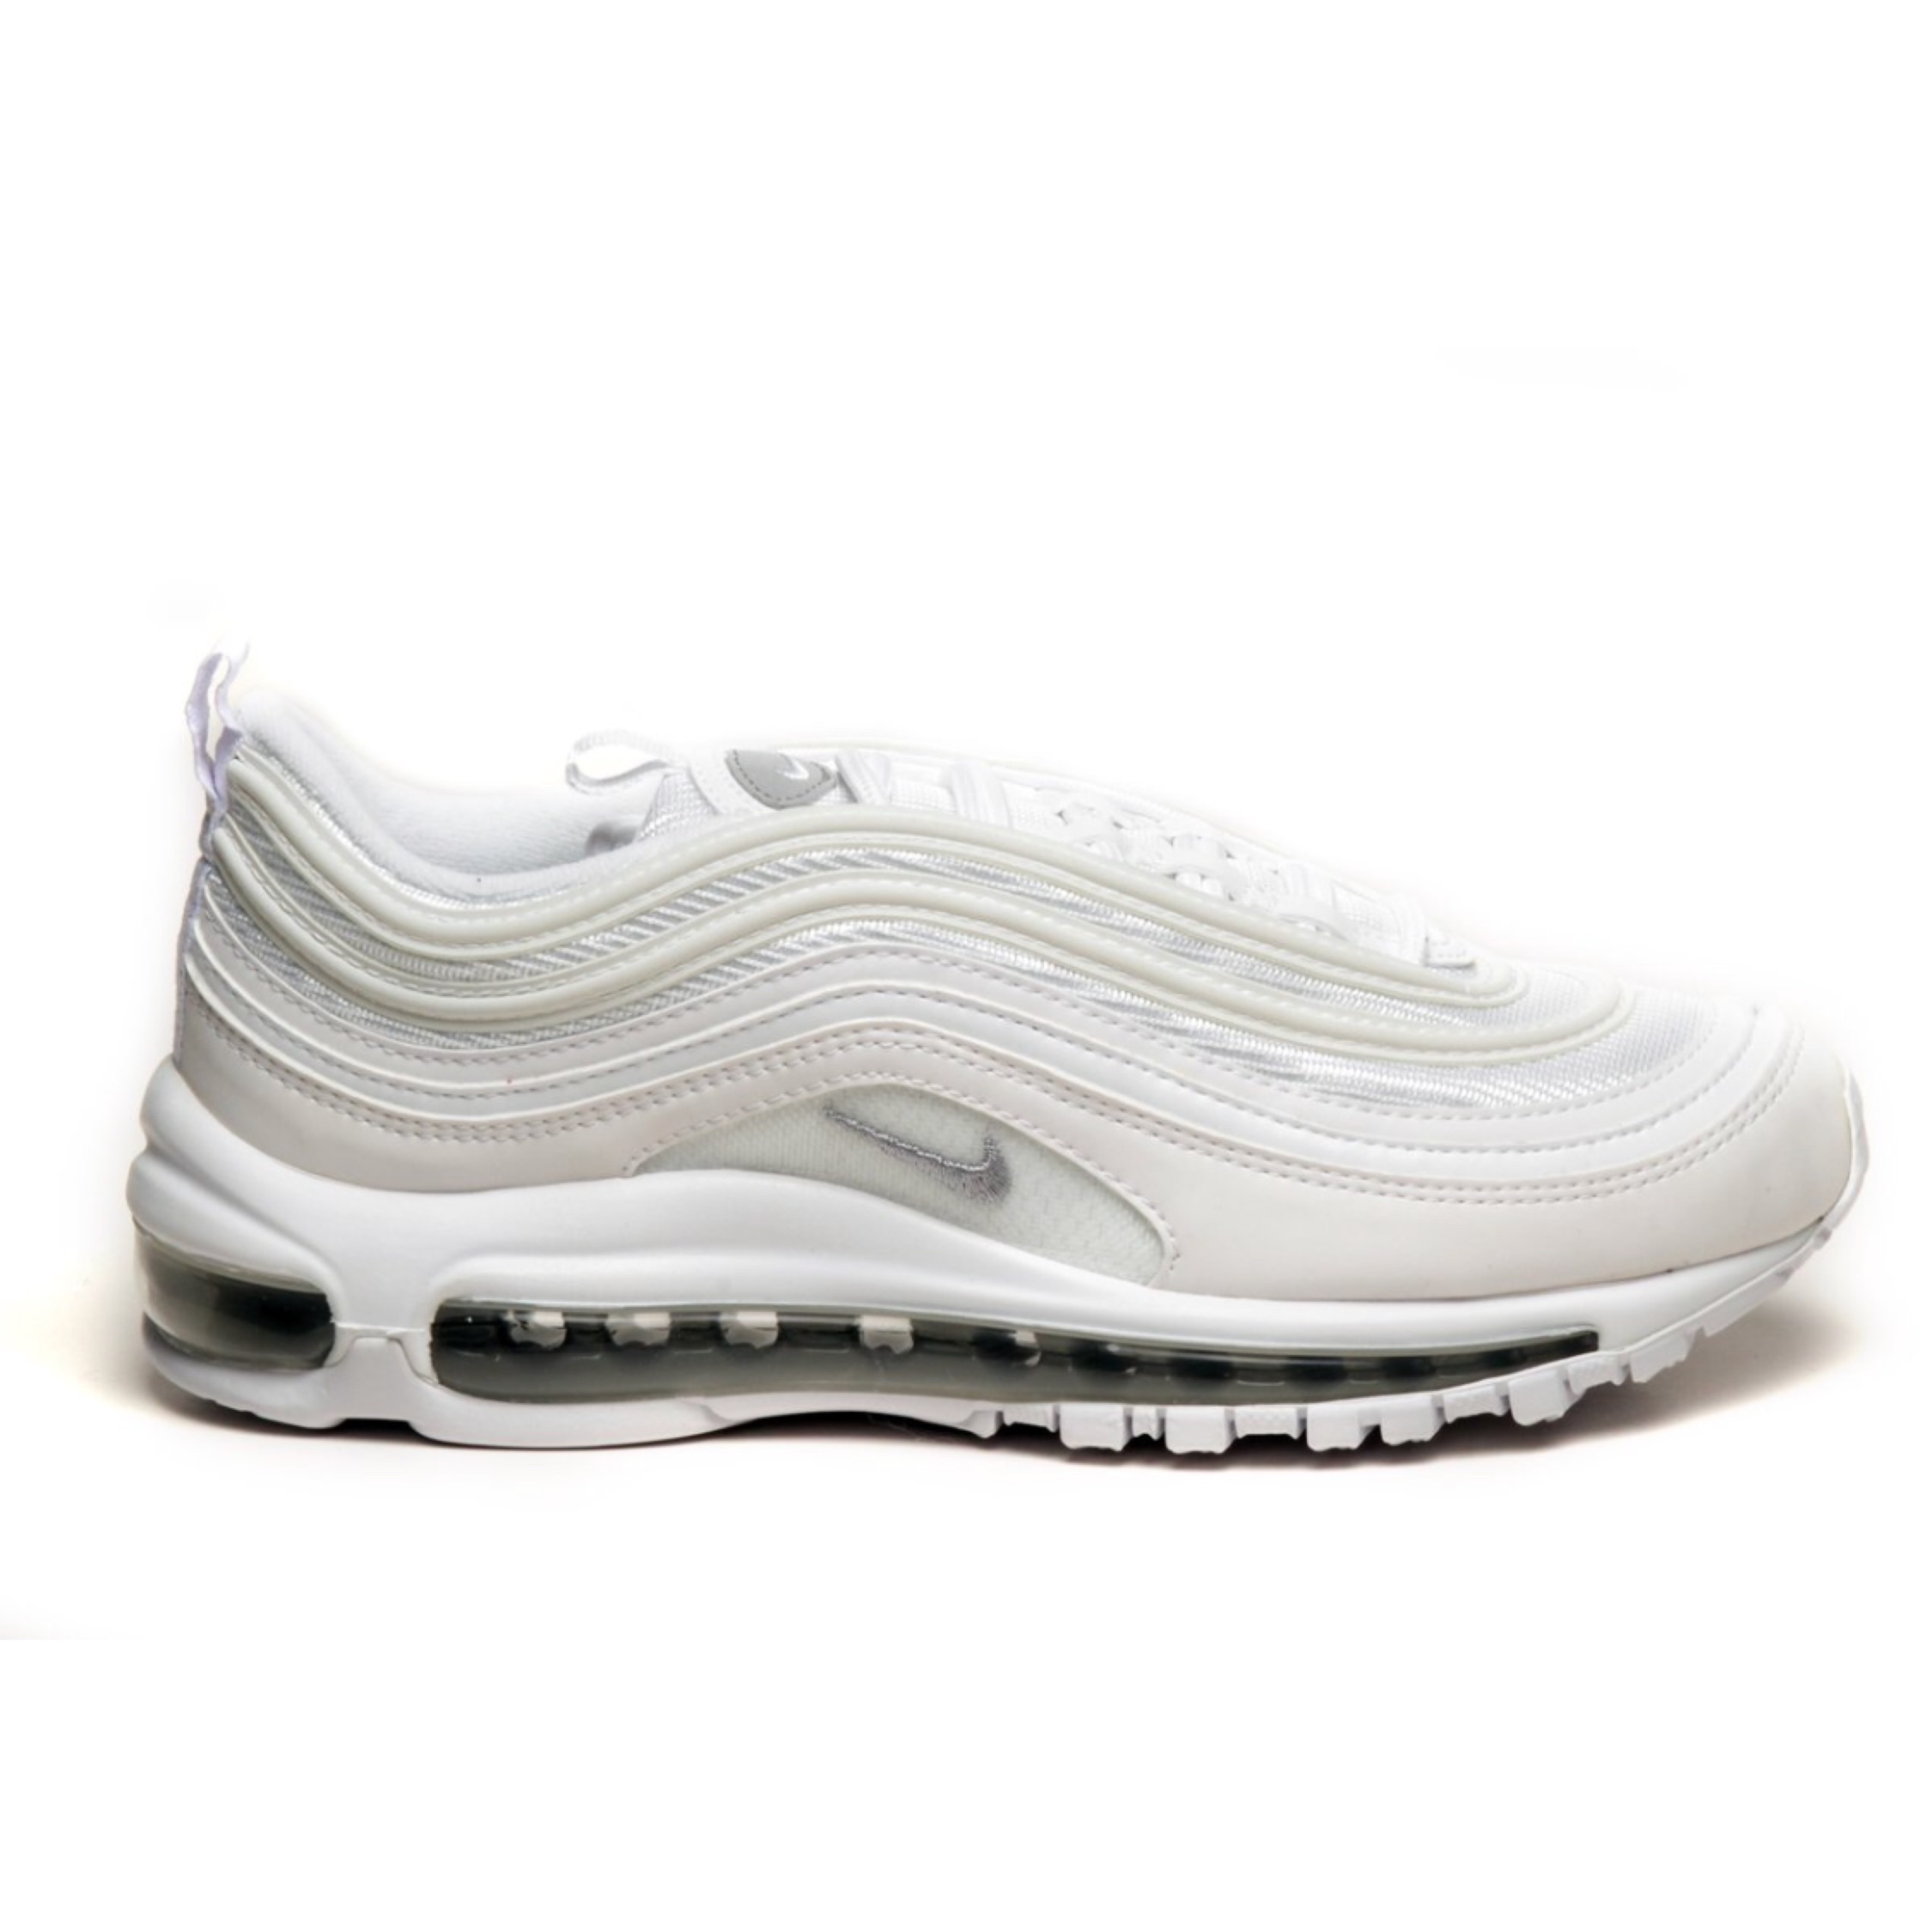 Nike Air Max 97 Cocoa Snake CT1549 001 Release Info